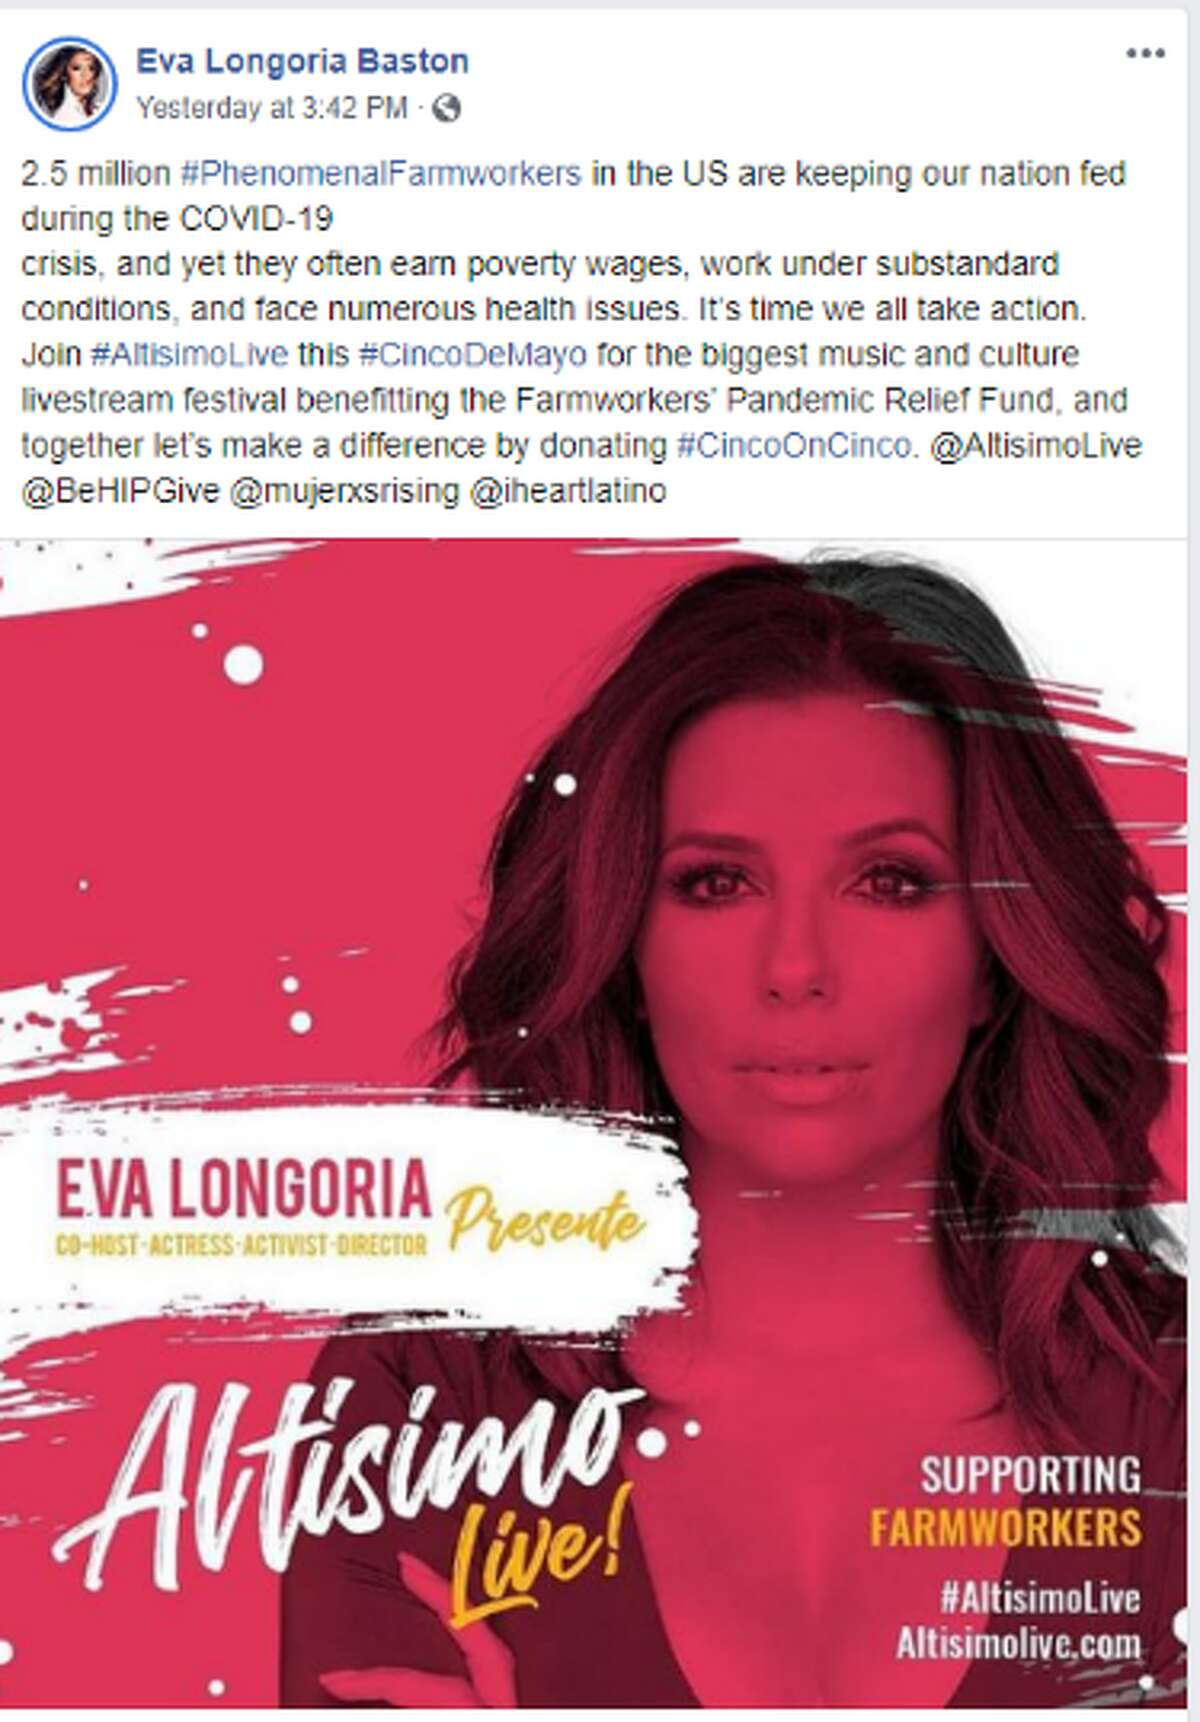 In celebration of Cinco de Mayo and in support of raising funds to benefit the Farmworkers' Pandemic Relief Fund, Eva is hosting Altisimo Live! Altísimo is a Livestream Latin Music & Pop Culture Festival to celebrate celebrate May 5 and raise money for the farmworkers.